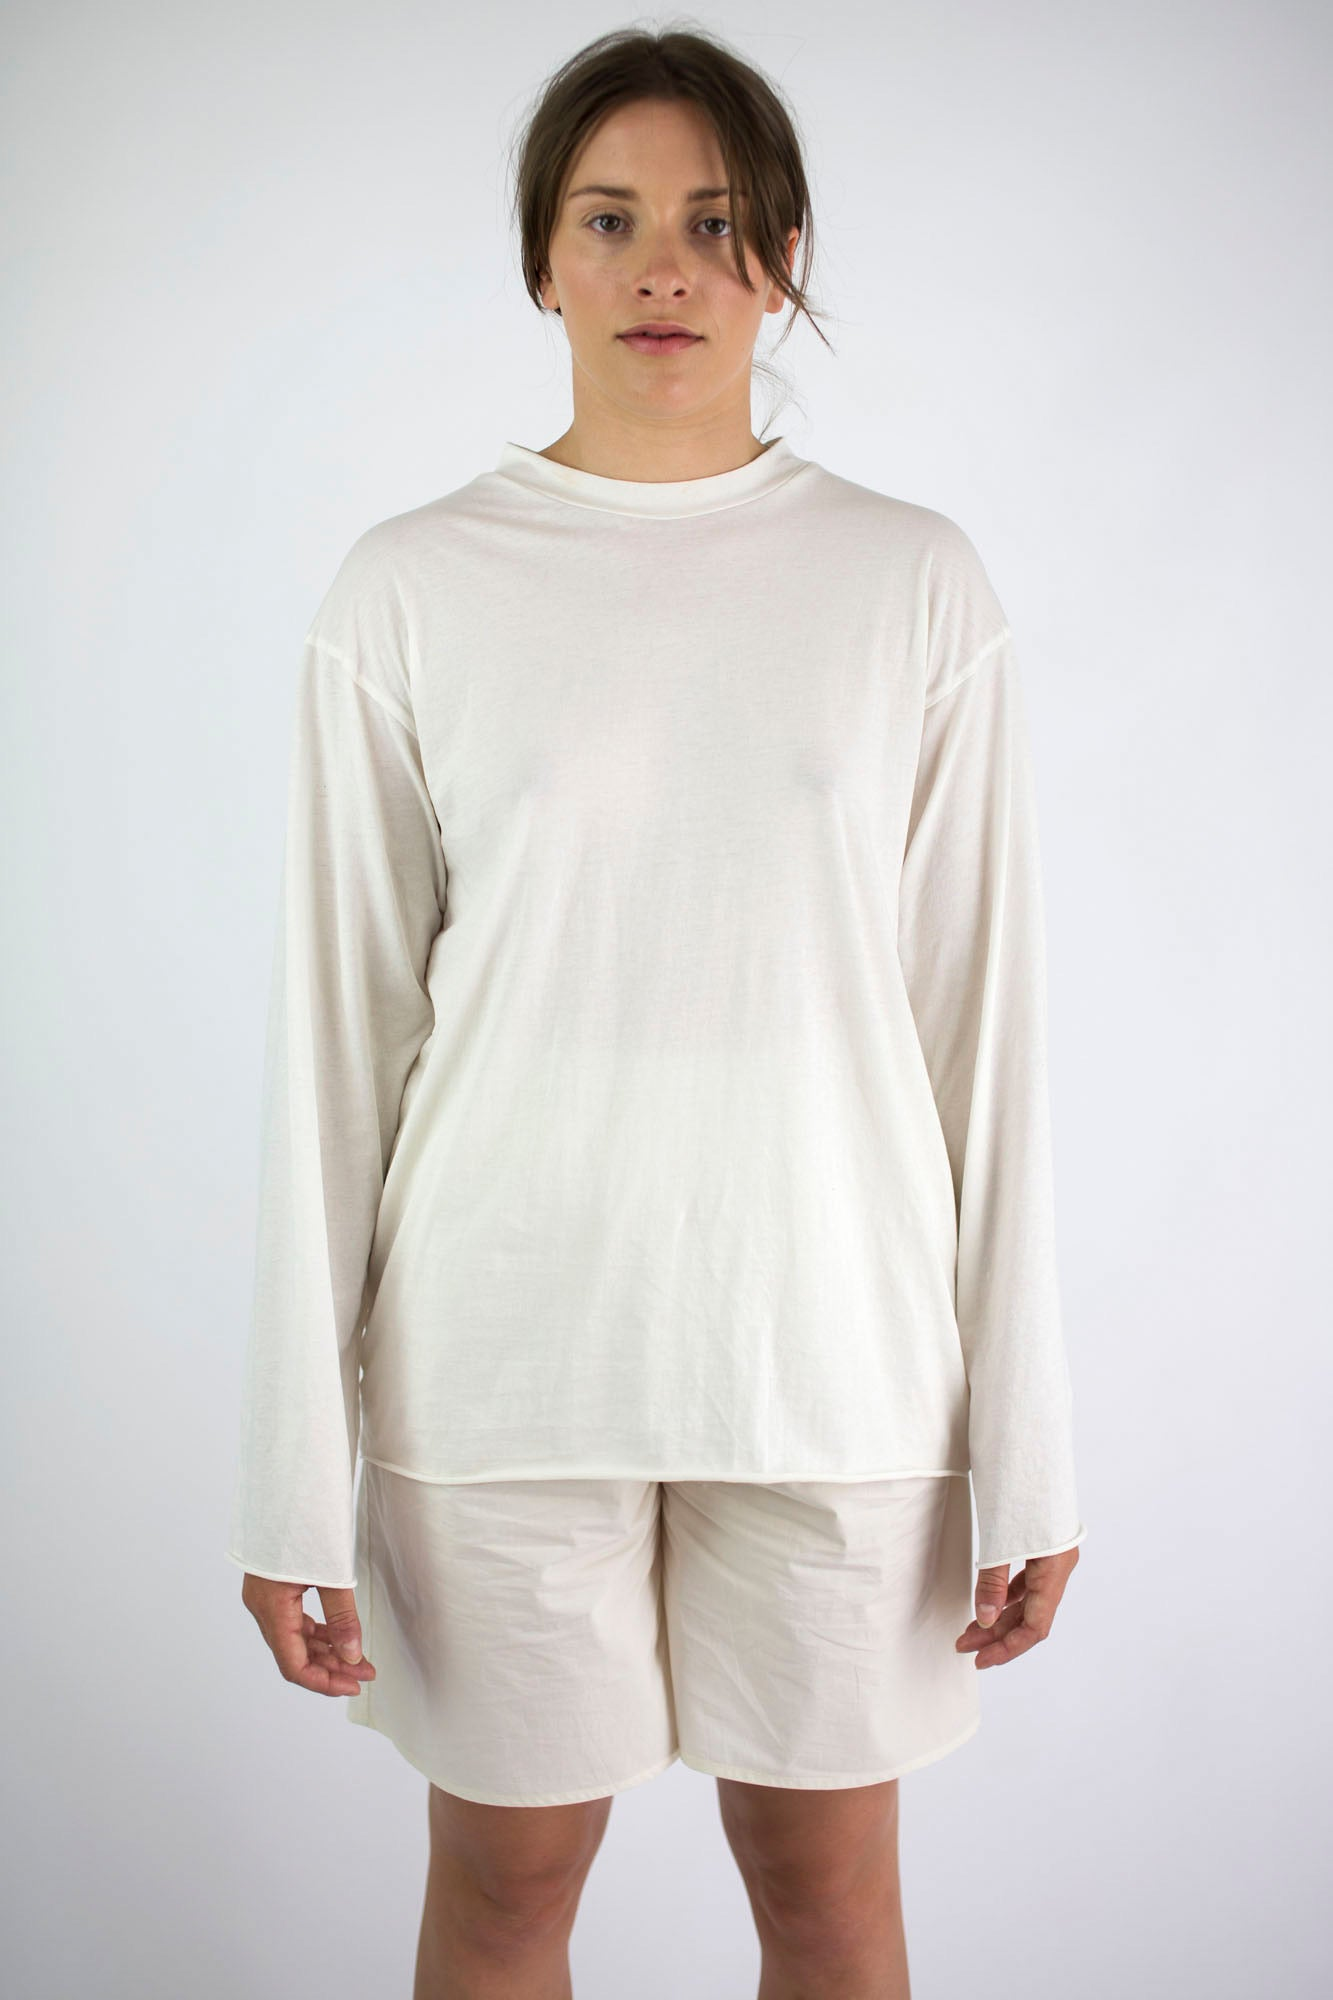 T shirt long sleeve muted white.